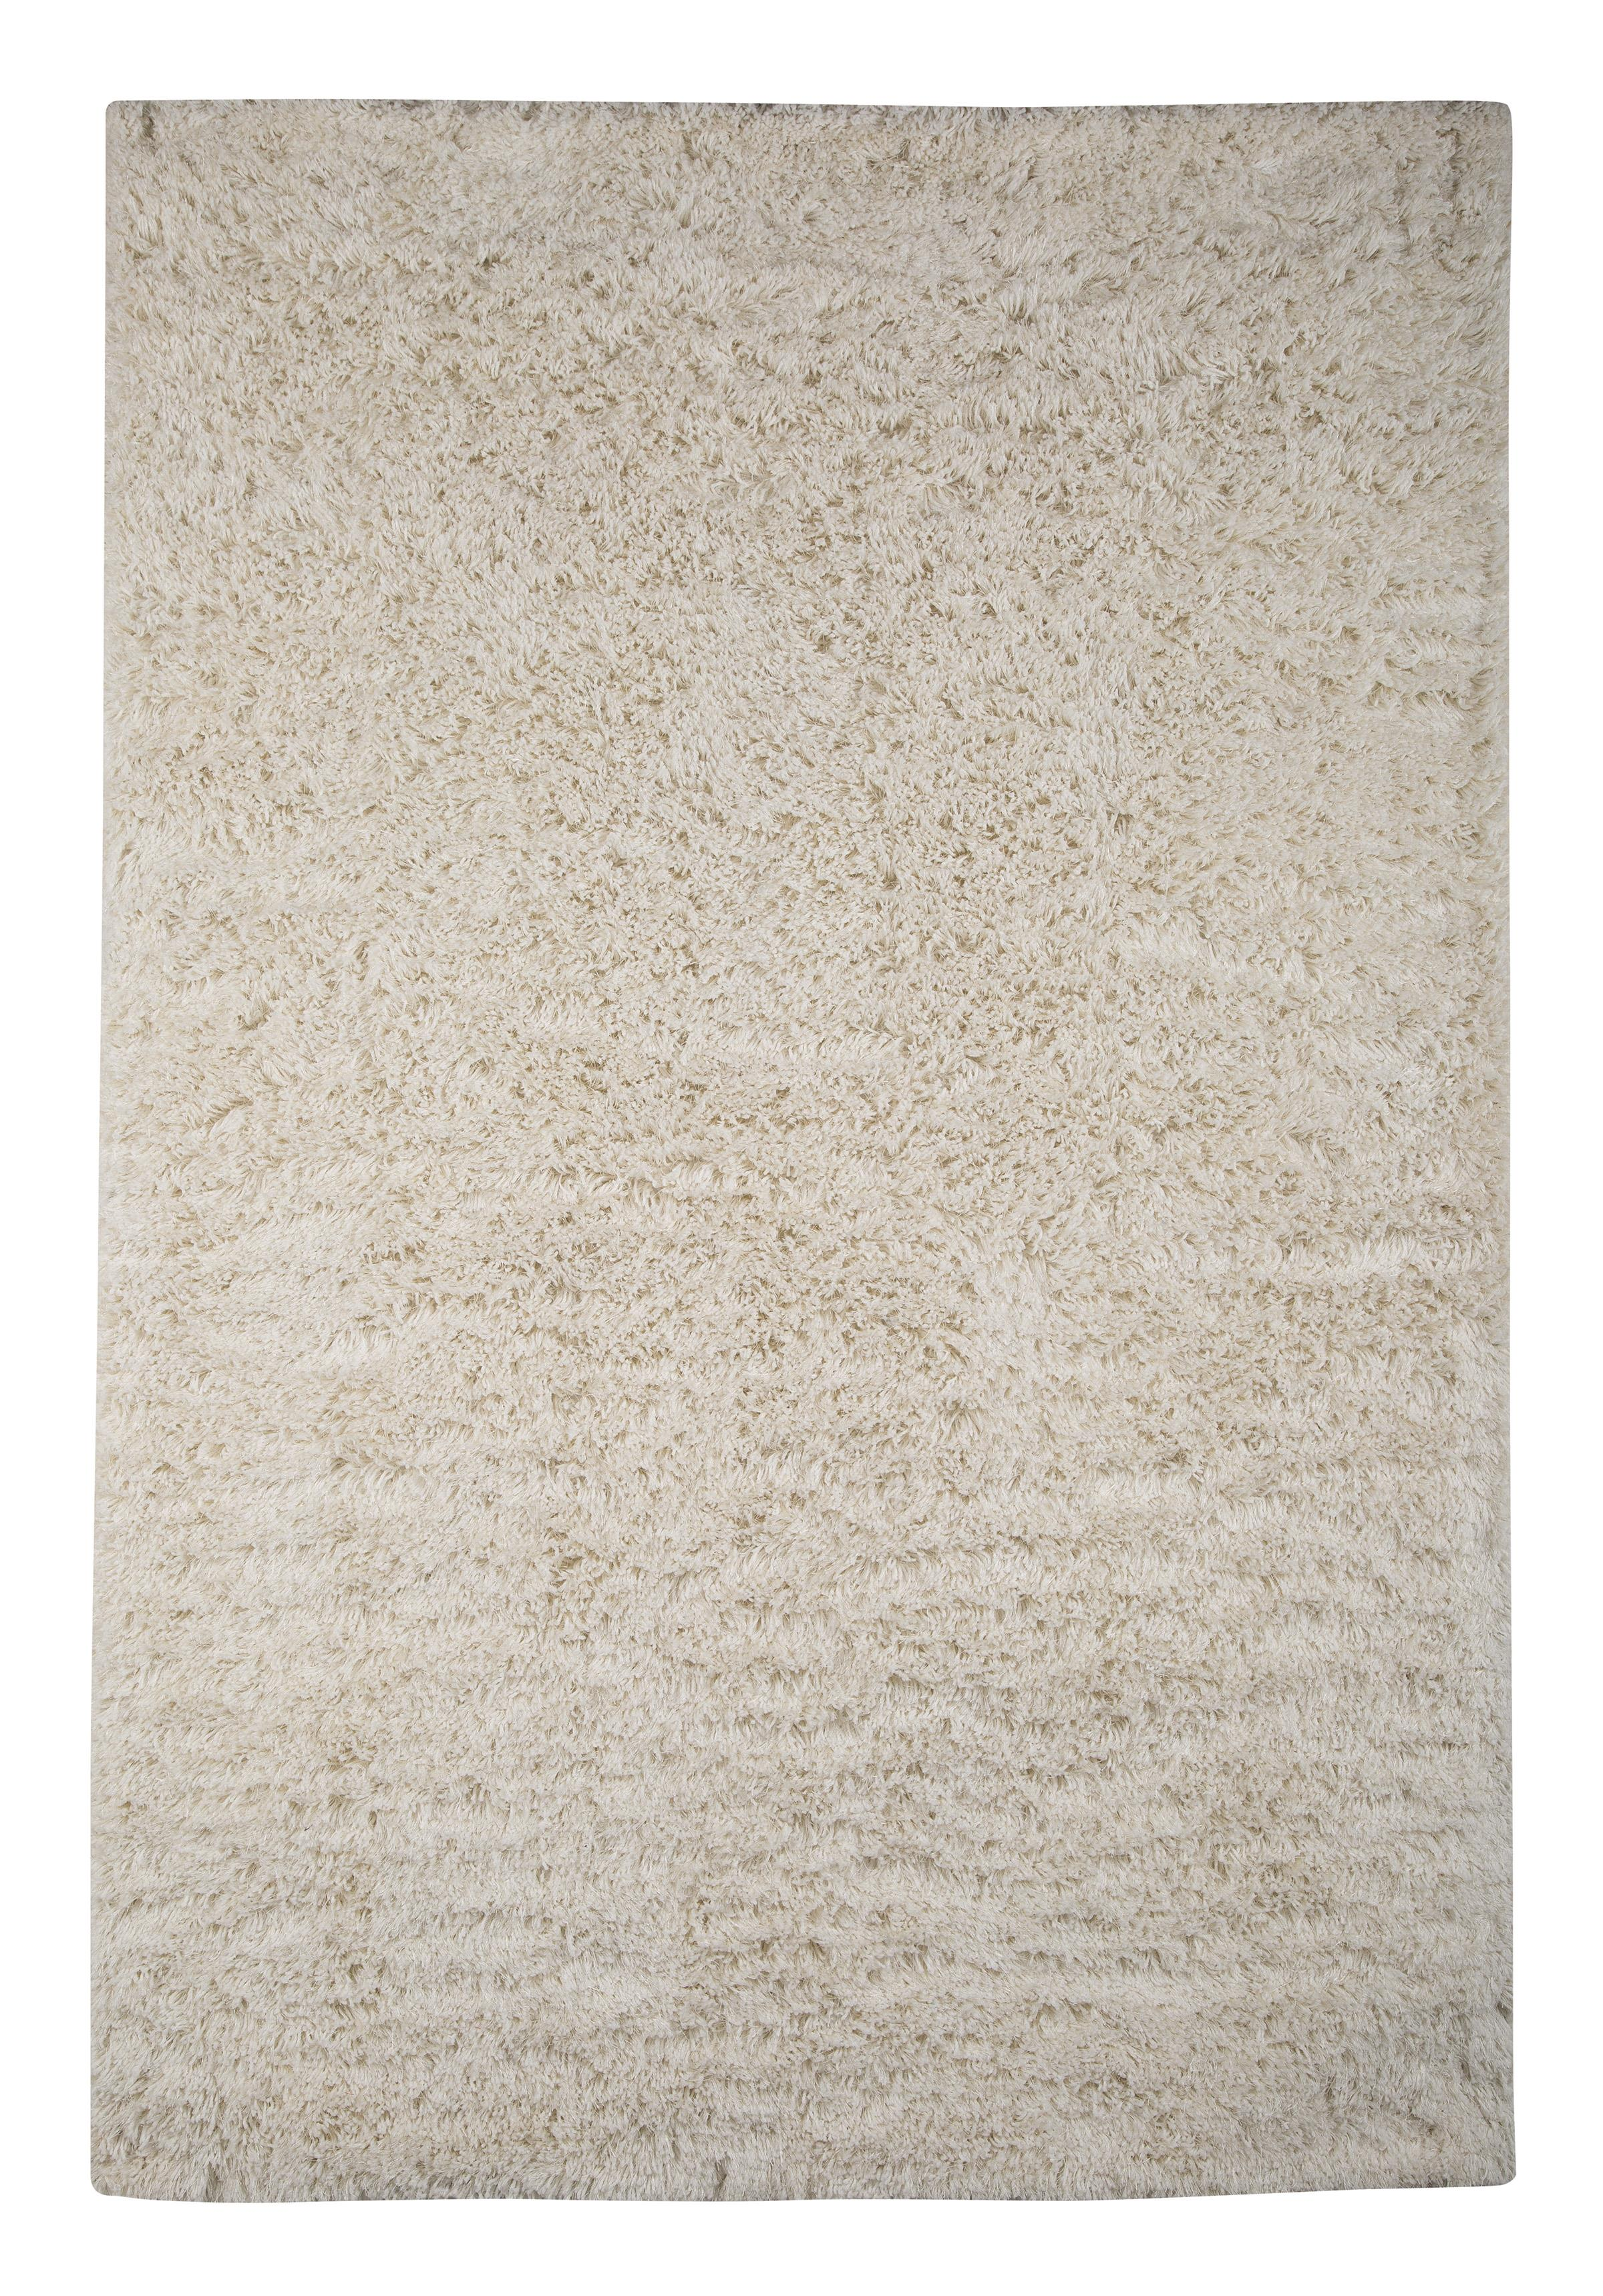 Signature Design by Ashley Transitional Area Rugs Alonso Ivory Medium Rug - Item Number: R400502